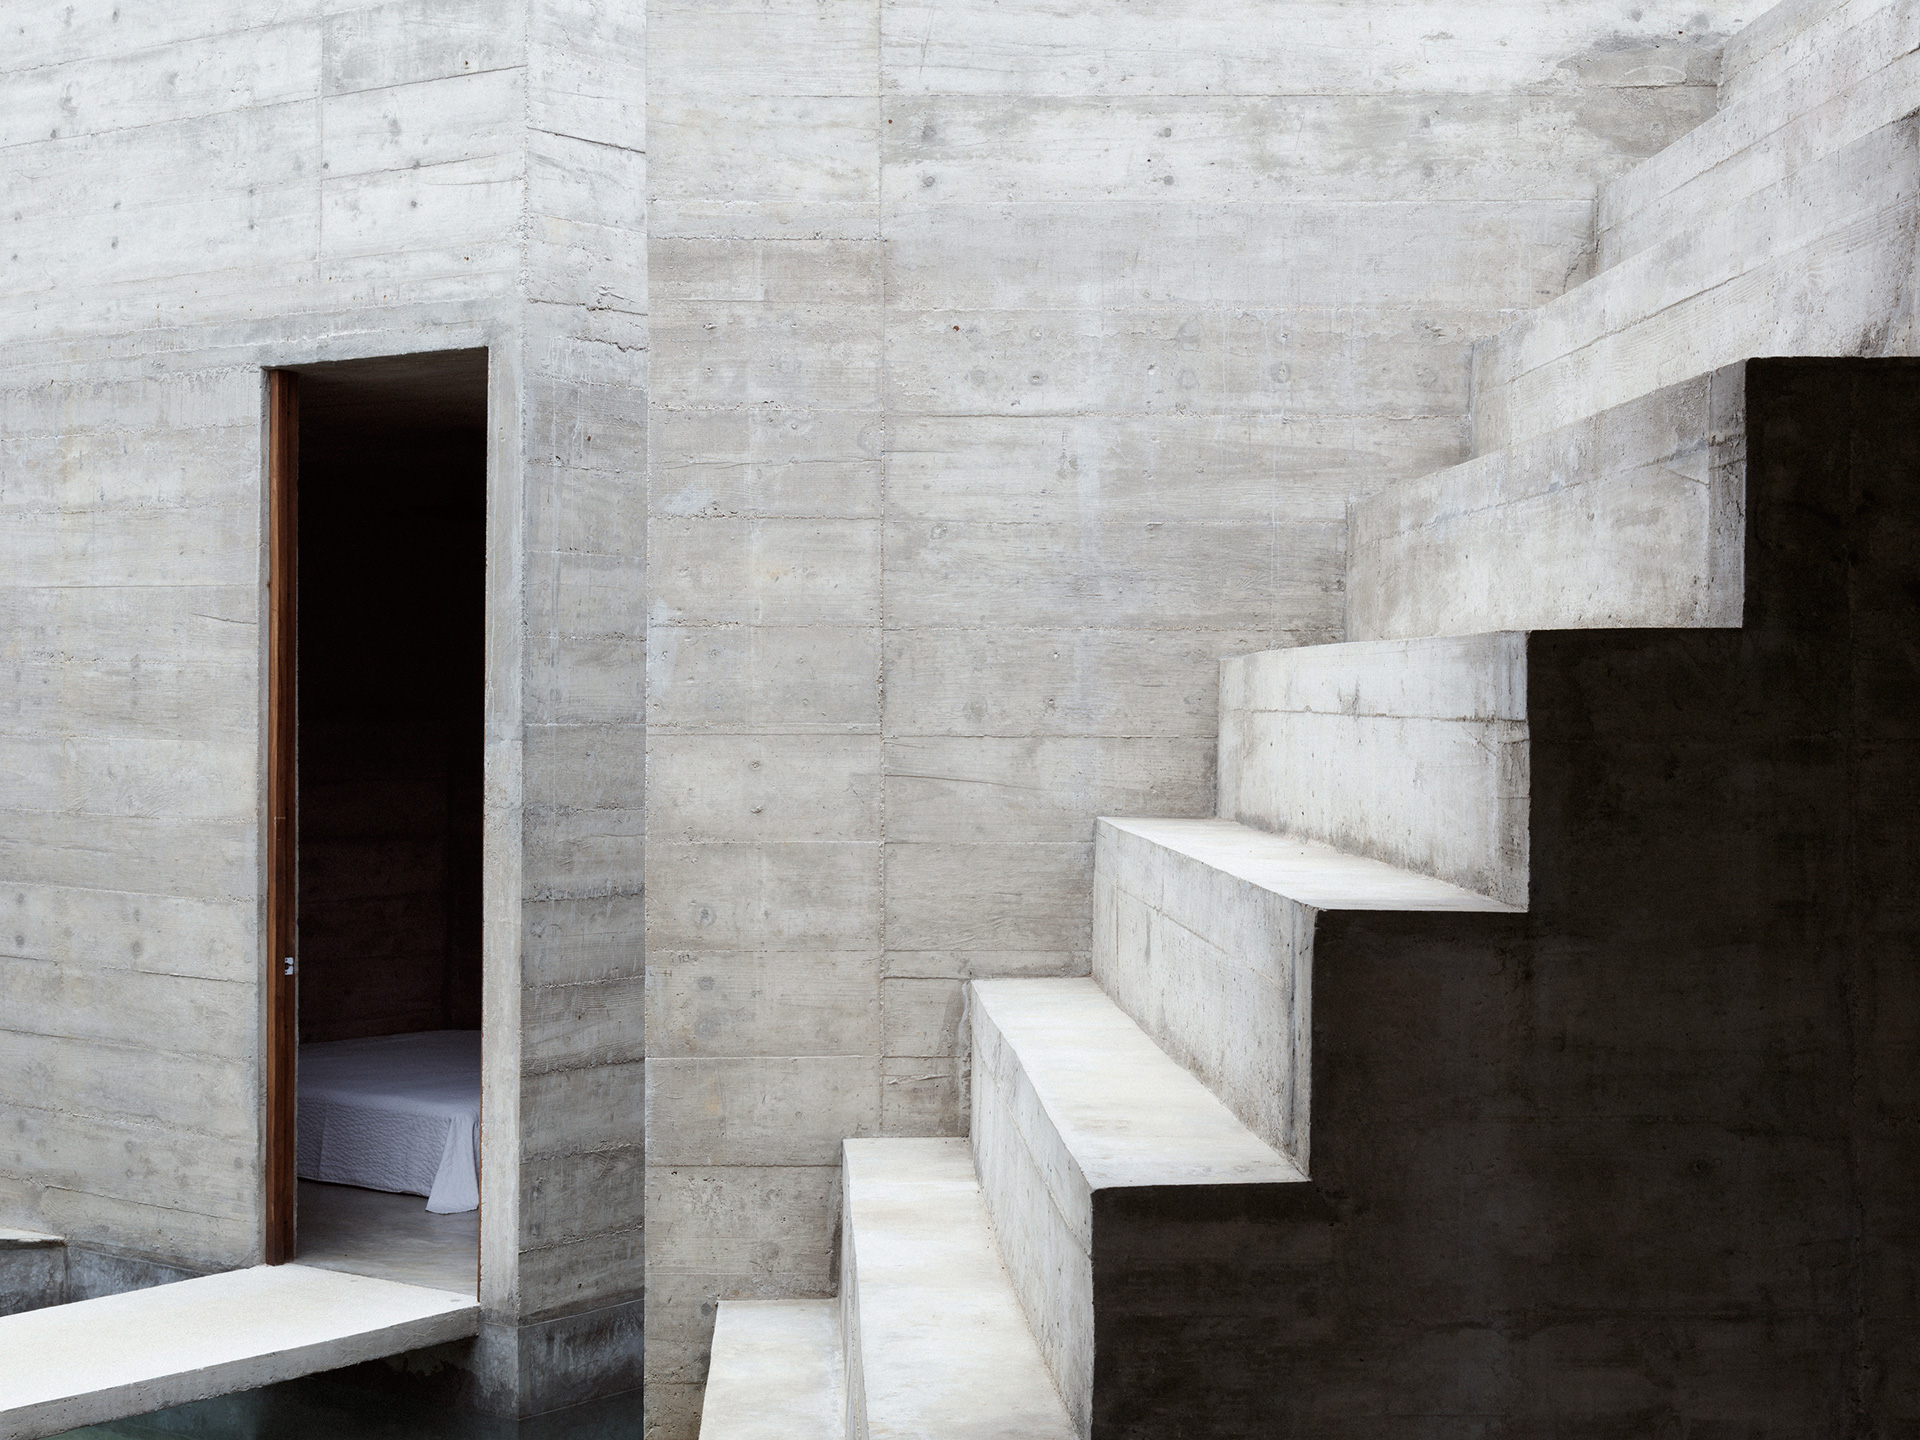 Concrete steps that can be used for sitting or displaying potted plants | Zicatela House | Mexico | Ludwig Godefroy |STIRworld